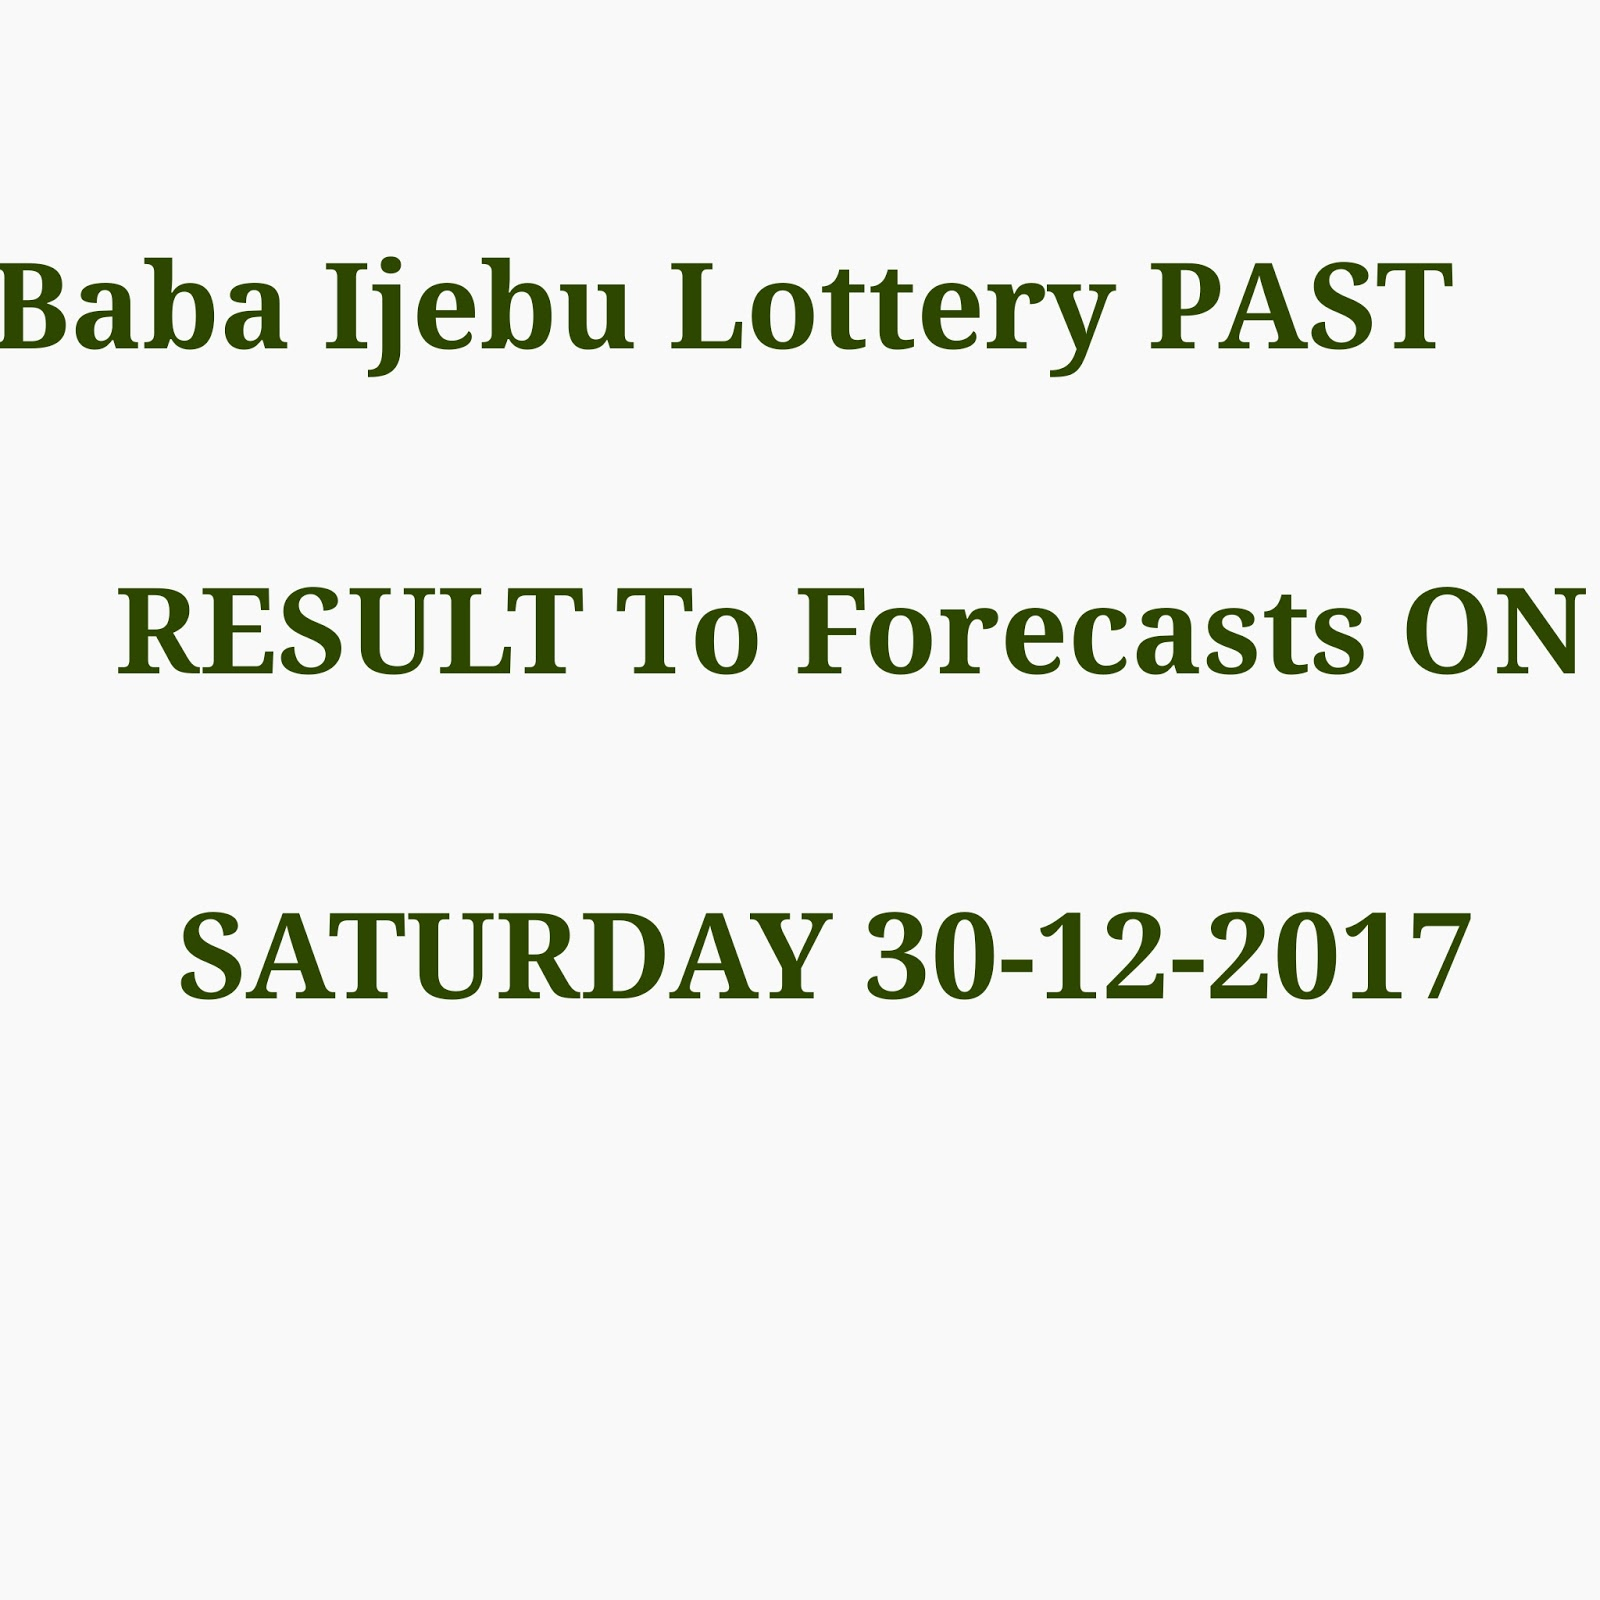 Baba Ijebu Lottery PAST RESULT To Forecasts ON SATURDAY 30-12-2017